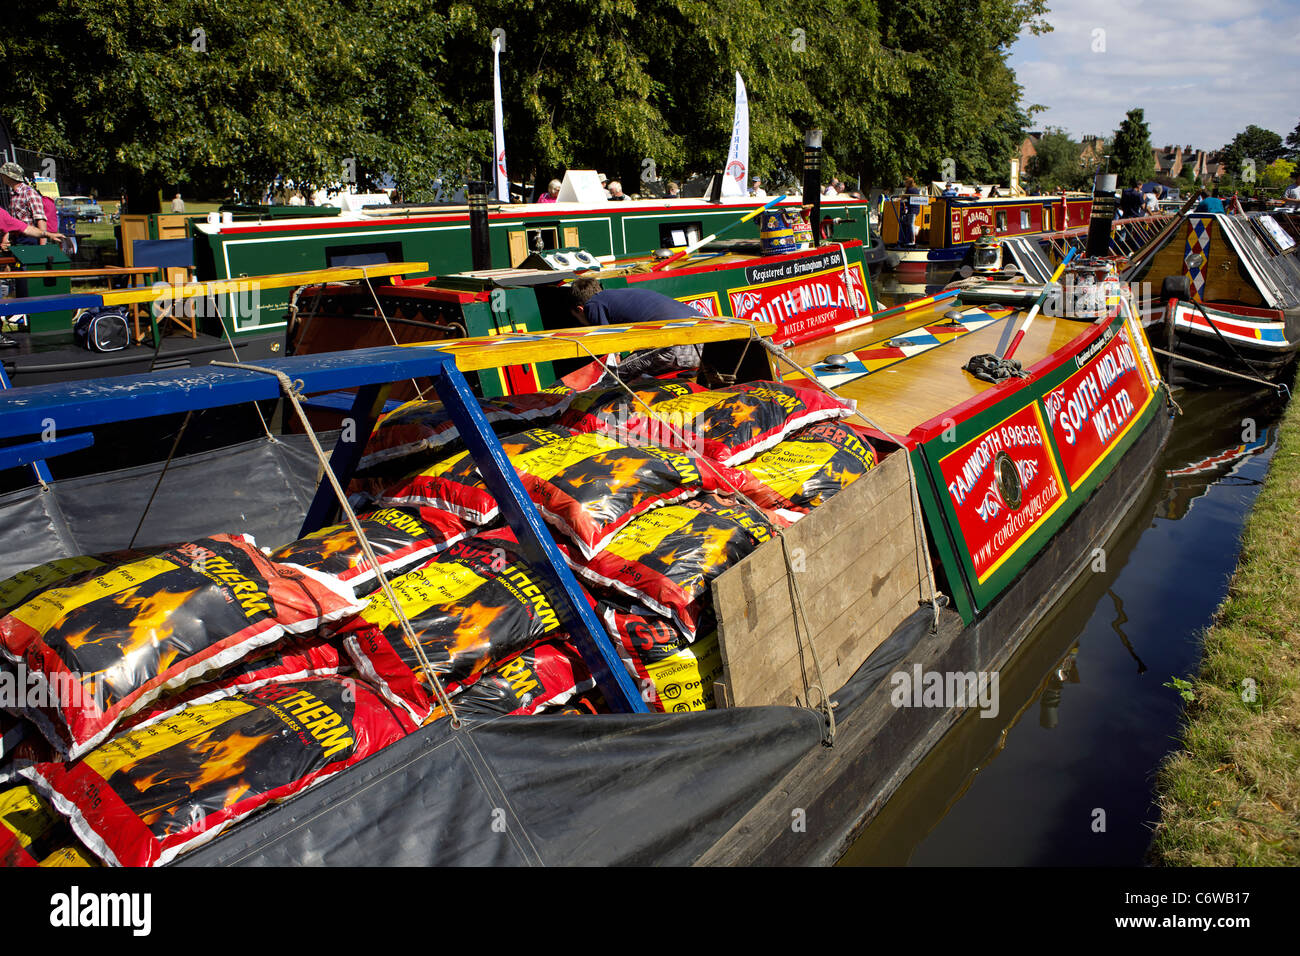 Traditional working narrowboat Australia, loaded up with coal, moored on the Trent and Mersey Canal during the 2011 - Stock Image